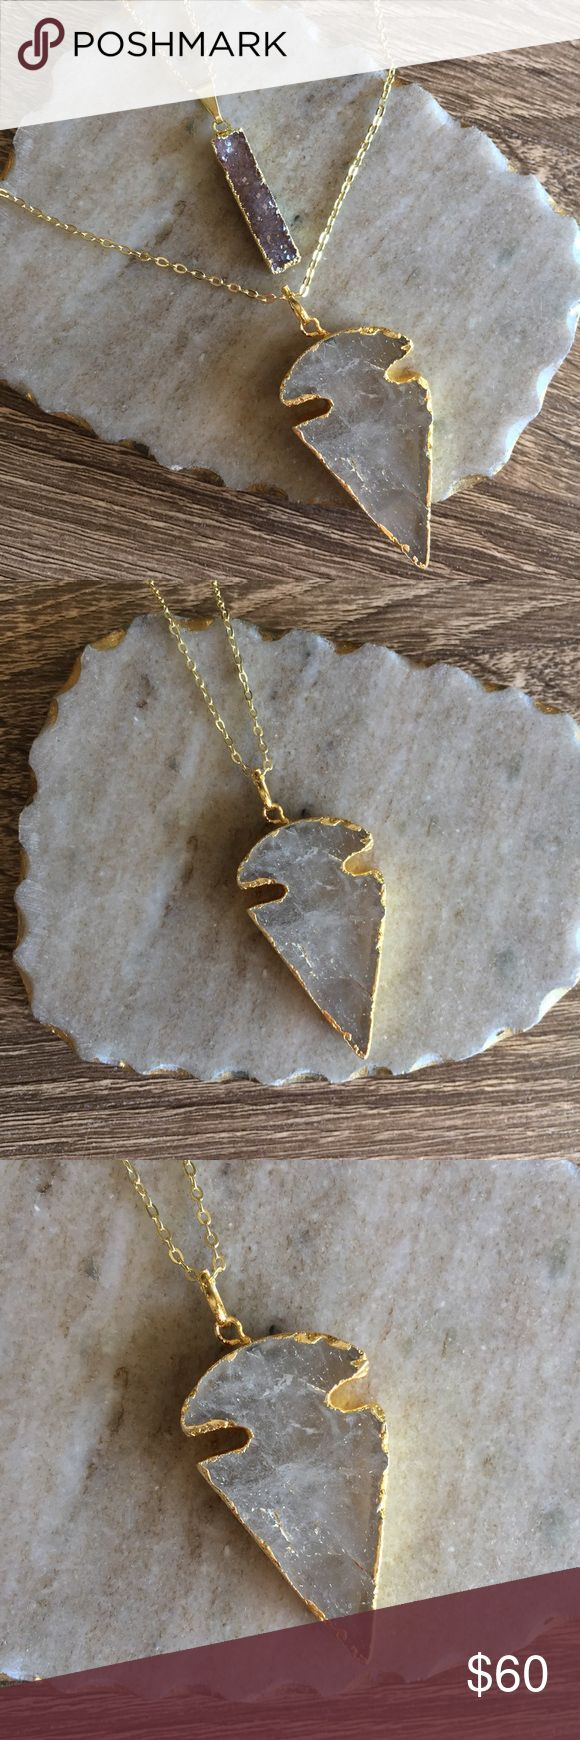 """24k Gold Plated Crystal Quartz Arrowhead Necklace △24k gold electroplated natural clear quartz arrowhead pendant, 18k gold plated 30"""" chain  ✨one of a kind✨ △Handmade in El Paso, TX Simple Sanctuary Jewelry Necklaces"""